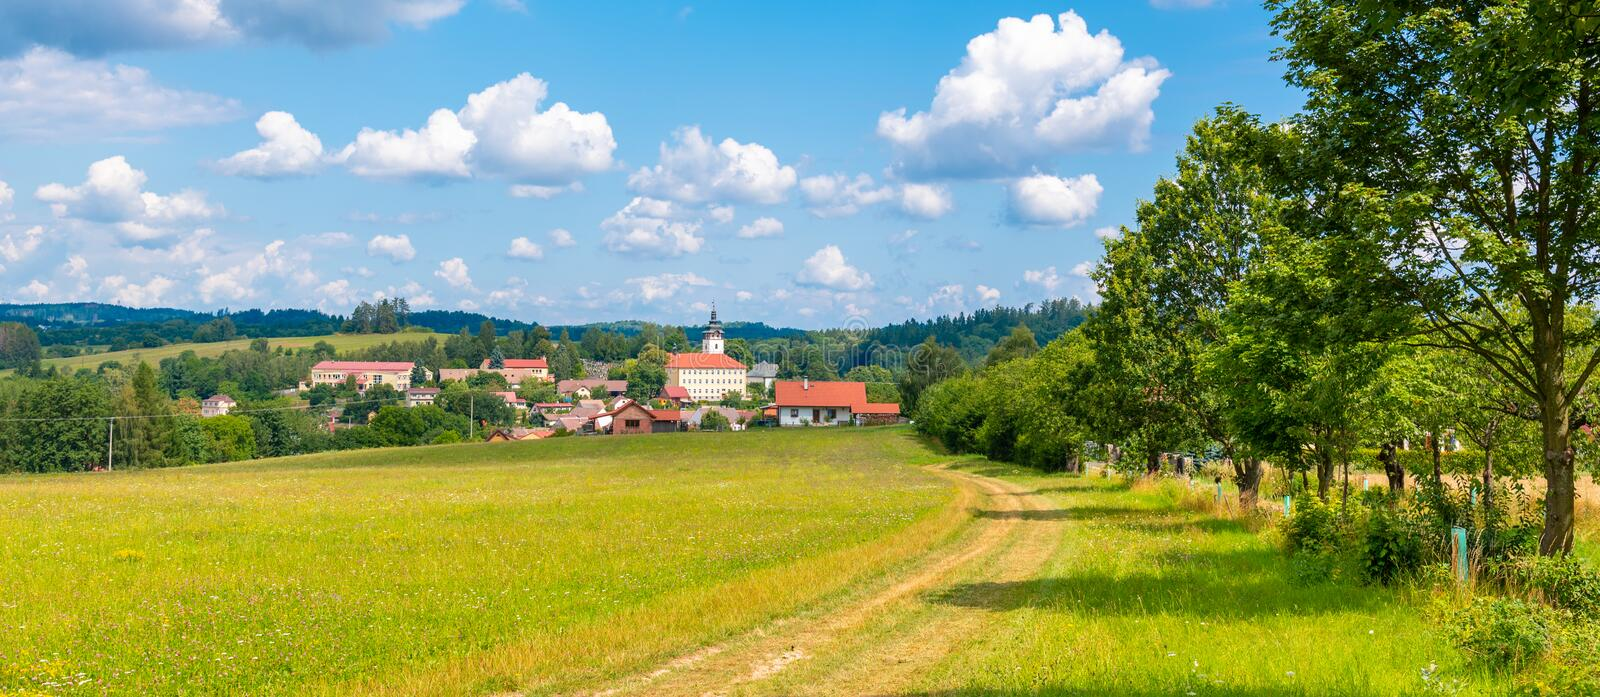 Rural summer landscape with green meadow, blue sky and white clouds. Jistebnice, South Bohemia, Czech Republic royalty free stock images